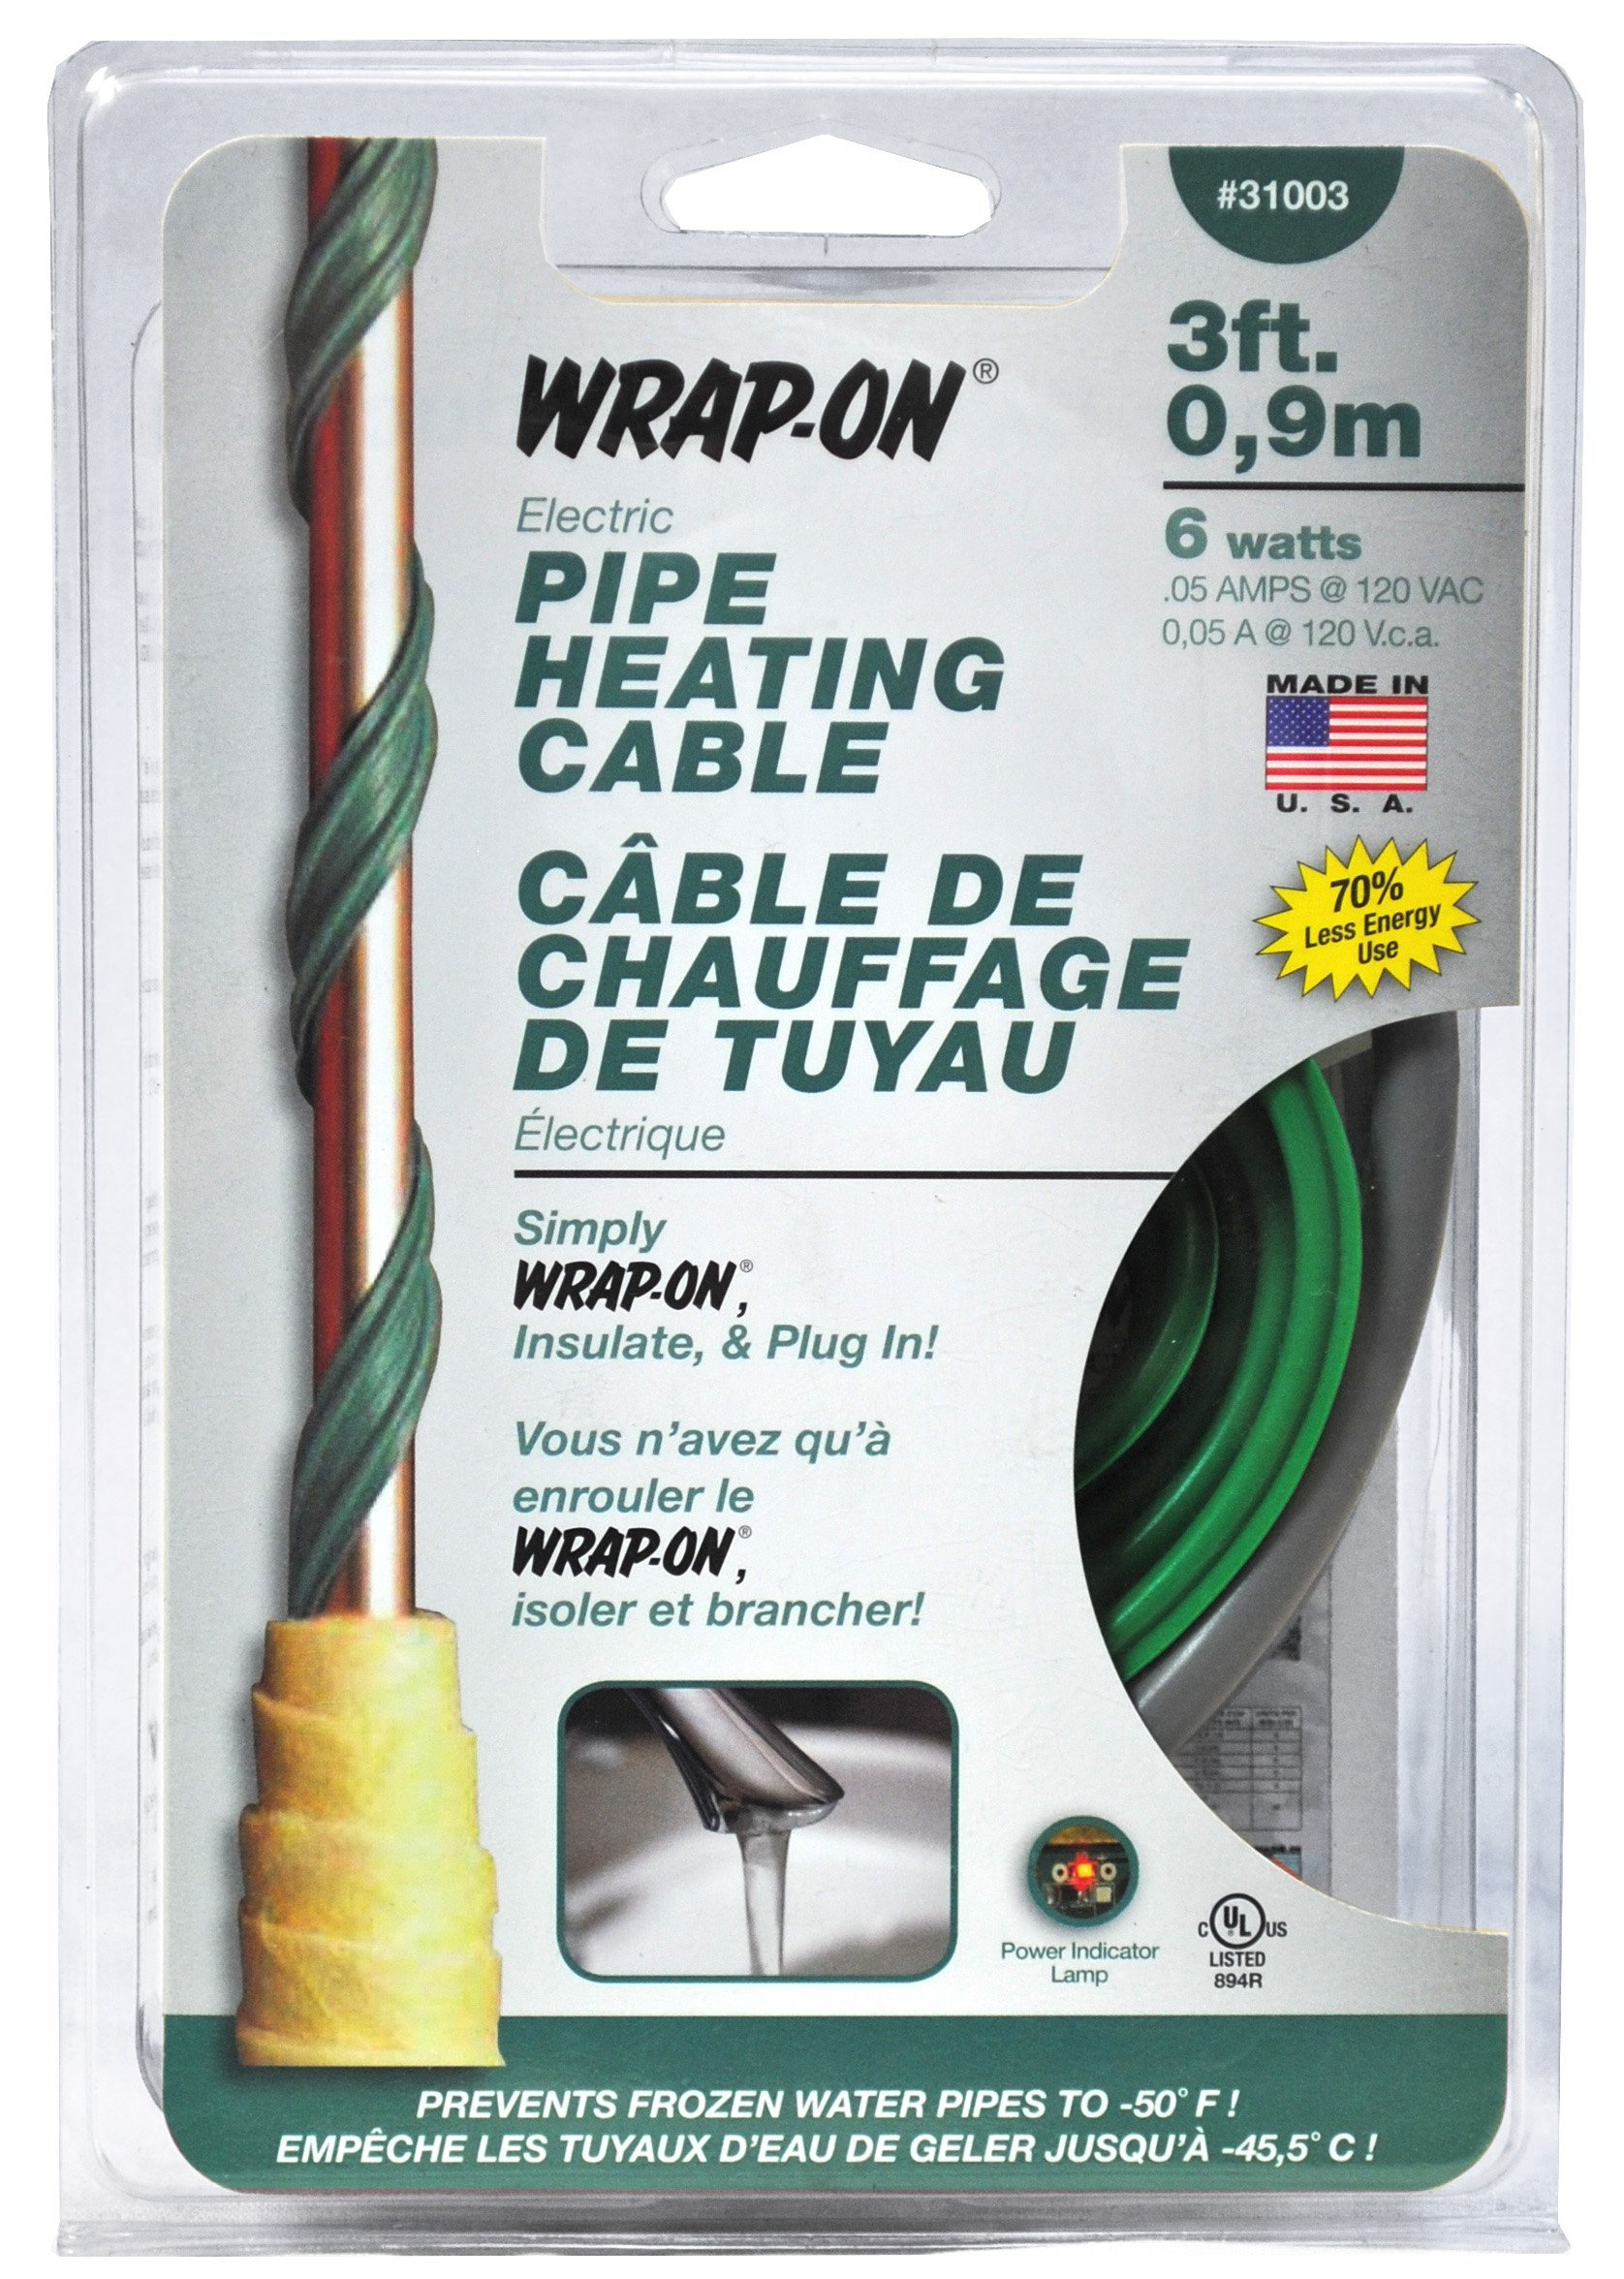 WRAP-ON Pipe Heating Cable - 3-Feet, 120 Volt, Built-in Thermostat, Low Wattage - 31003